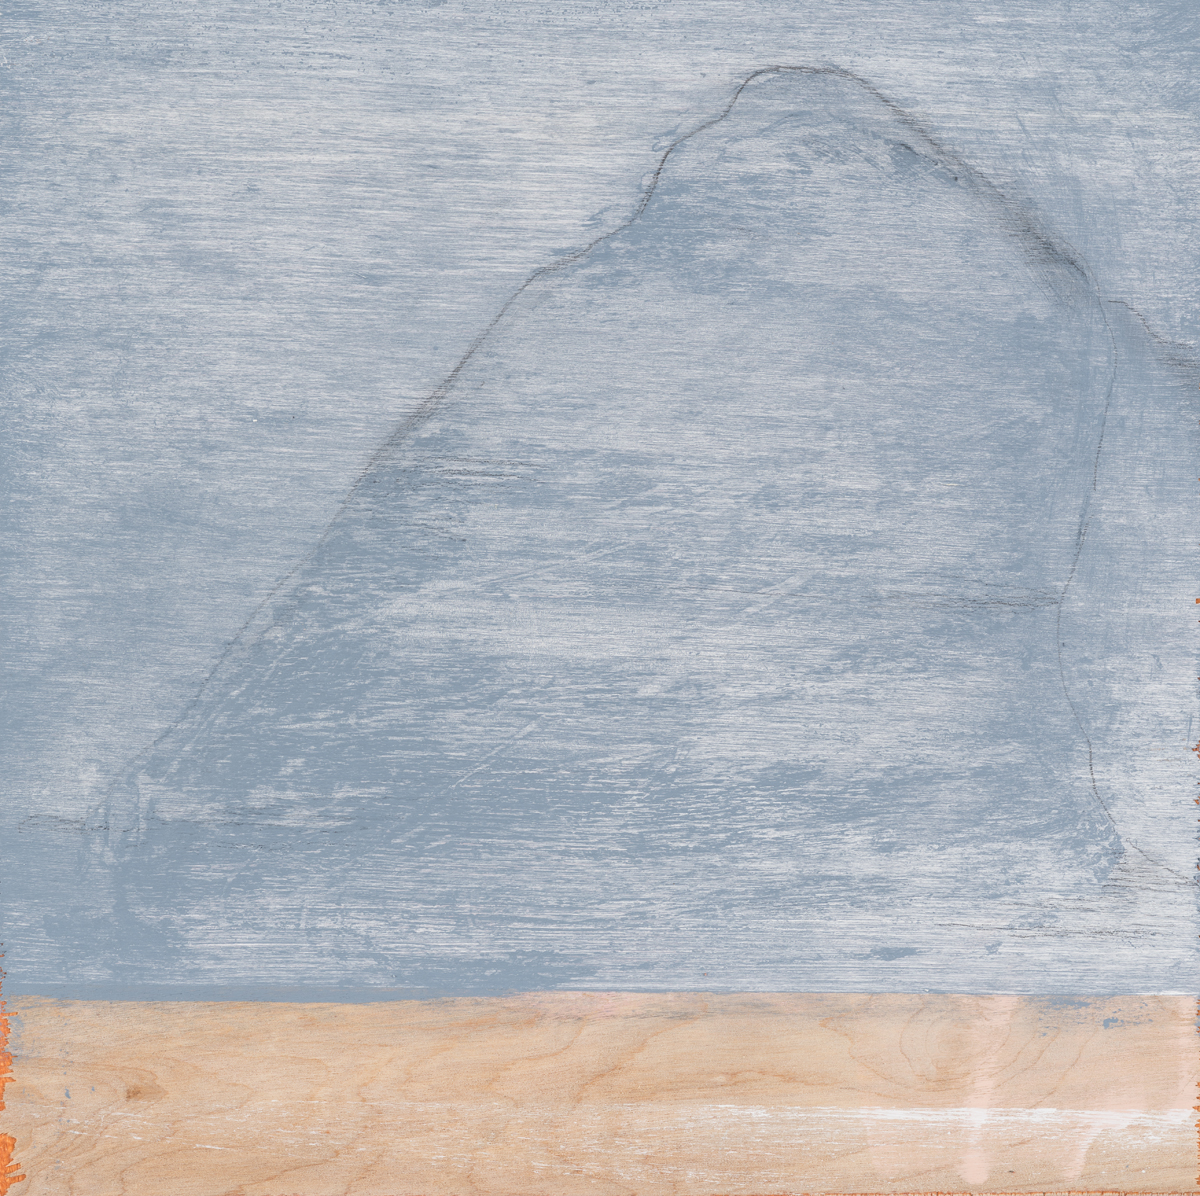 """Mountain after a Chinese painting , 2016. Acrylic and graphite on wood panel. 10""""x10"""""""